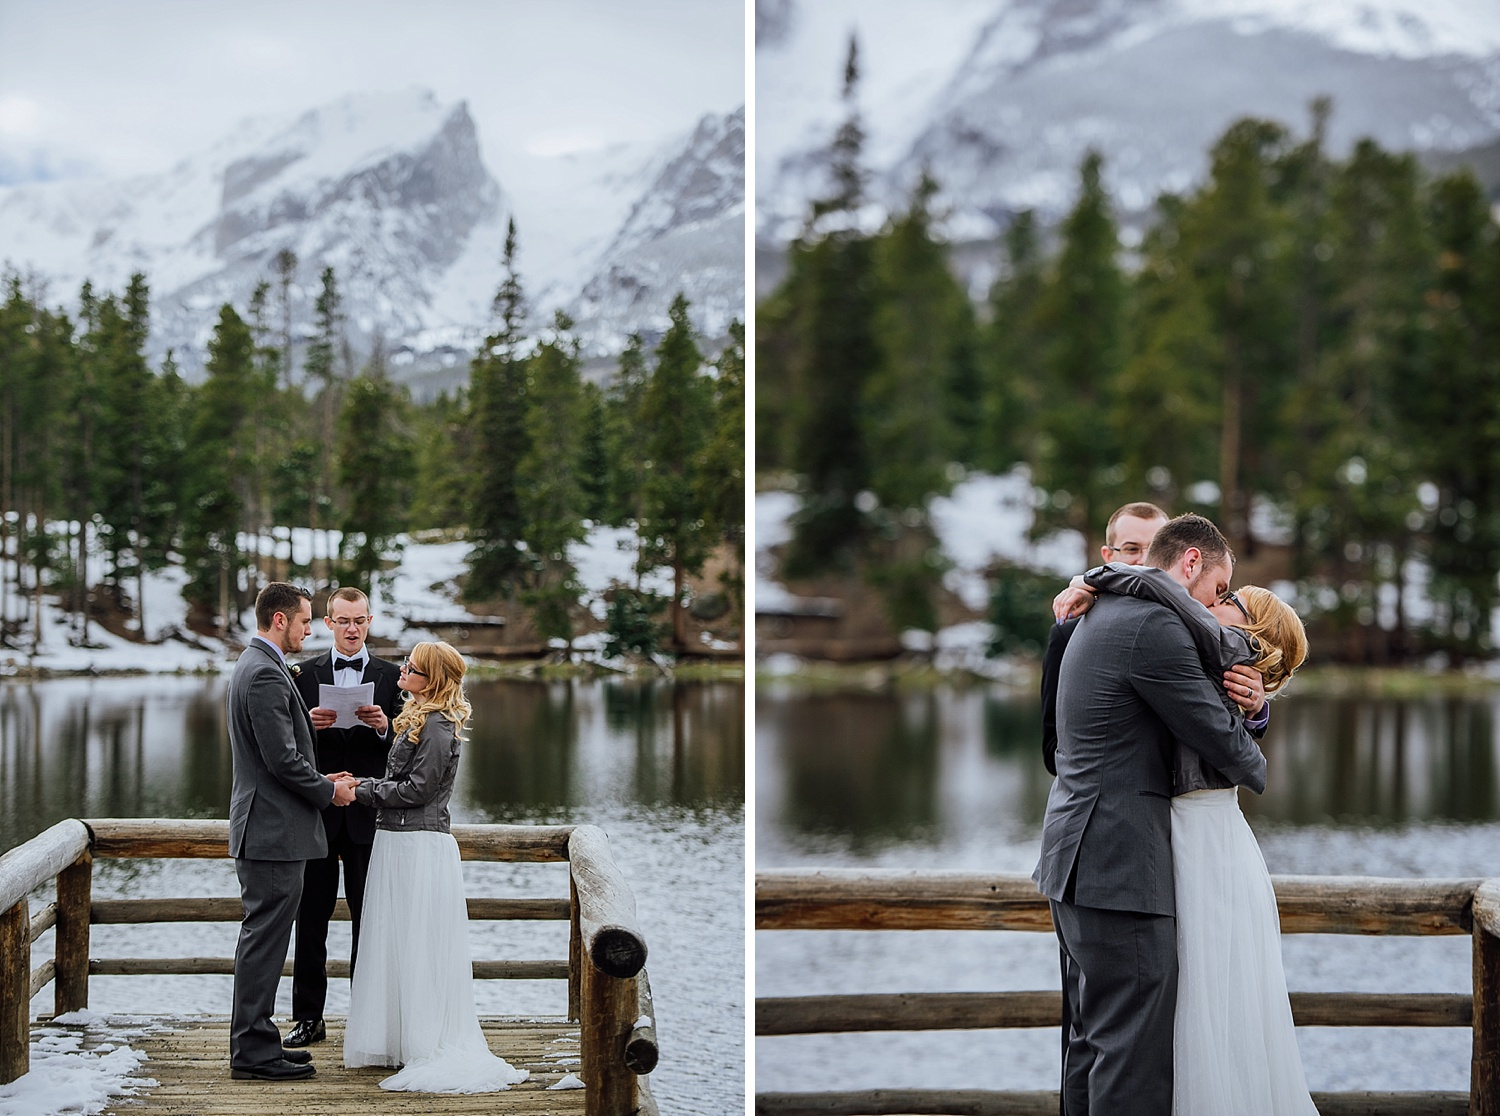 Sprague Lake is such a cool venue - especially having the ceremony right there on the dock. I love these mountain, winter, wedding/elopement photos! Photo by Maddie Mae Photography